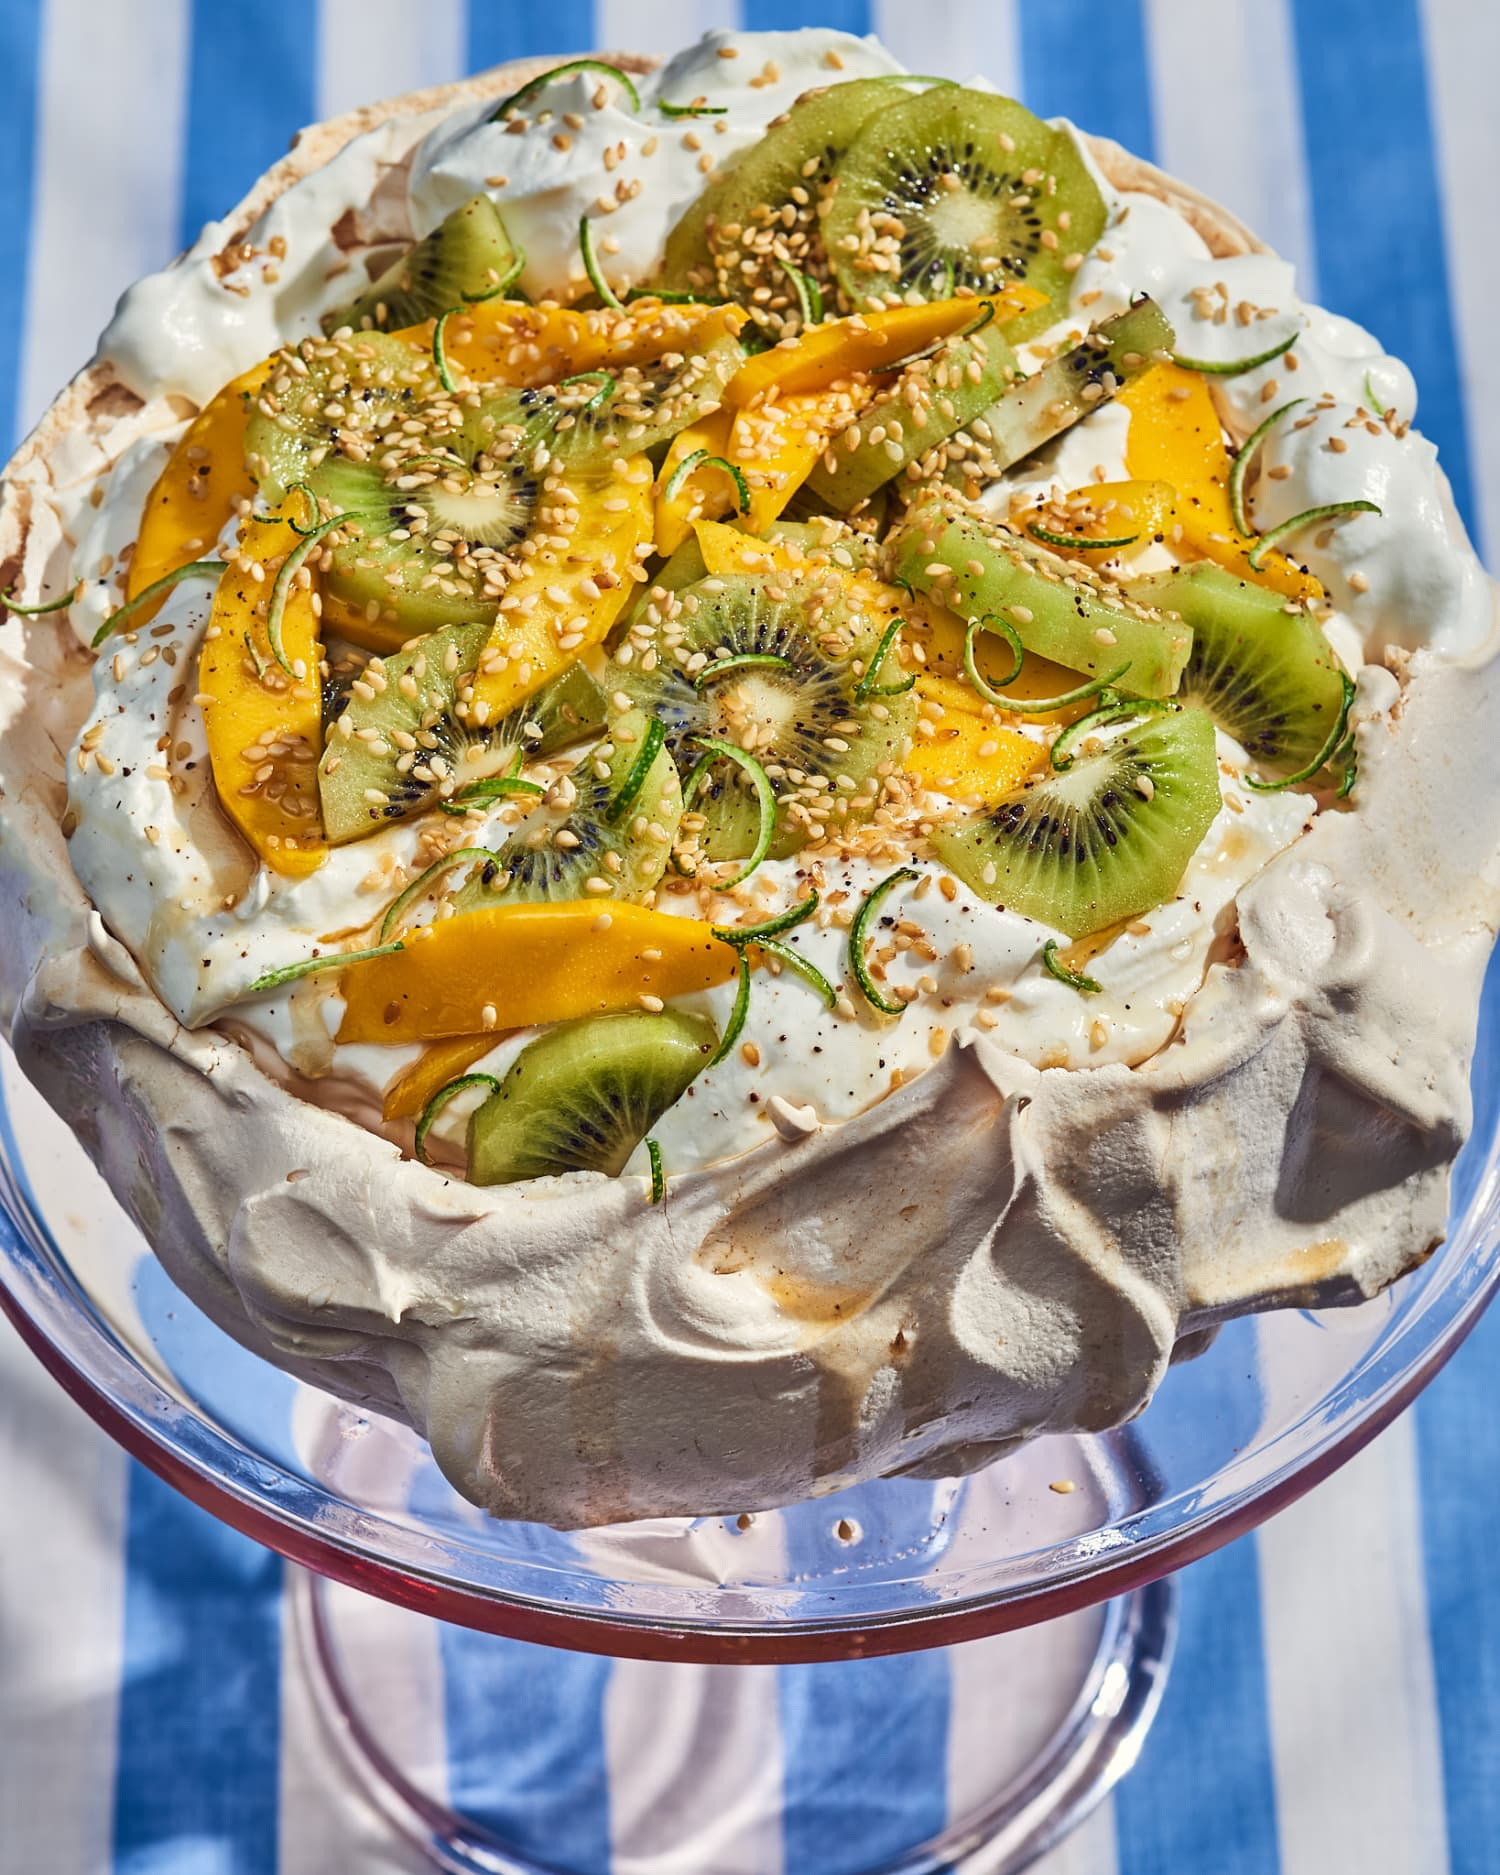 Pavlova Is the Perfect Dessert to Share with Friends for Pride This Year